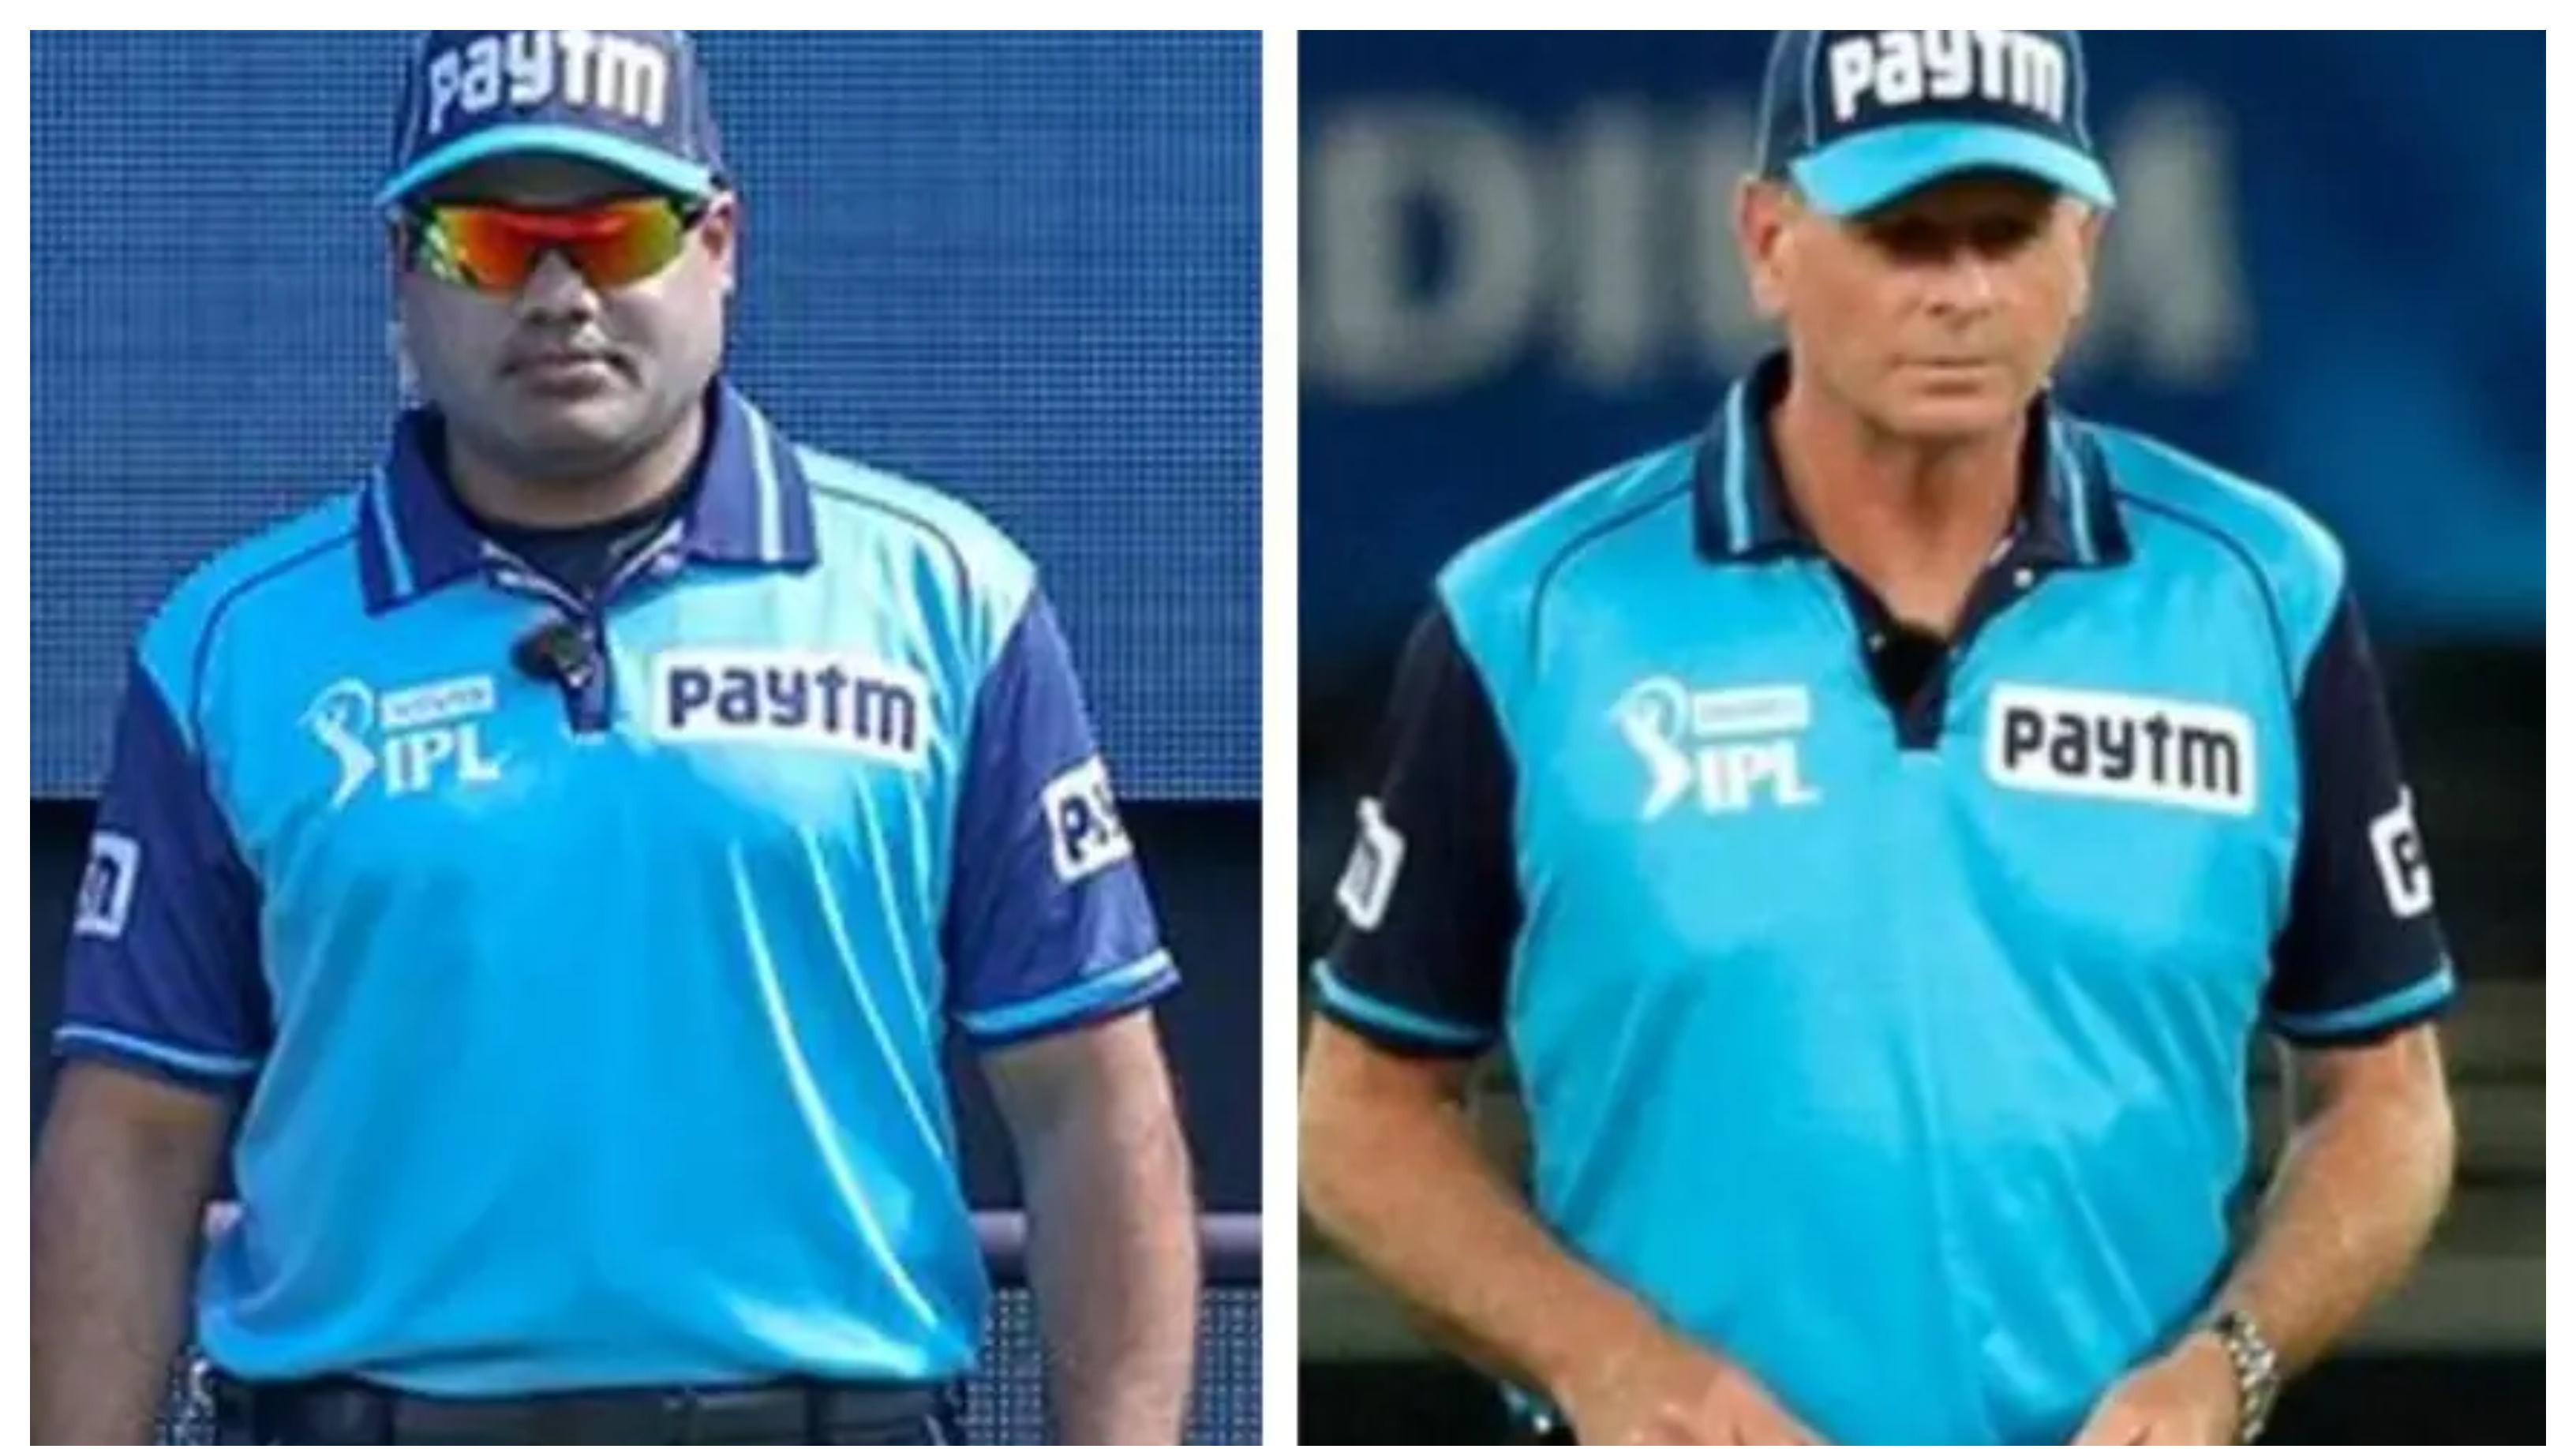 IPL 2021: Umpires Nitin Menon and Paul Reiffel opt out of IPL 14 amid COVID-19 crisis in India